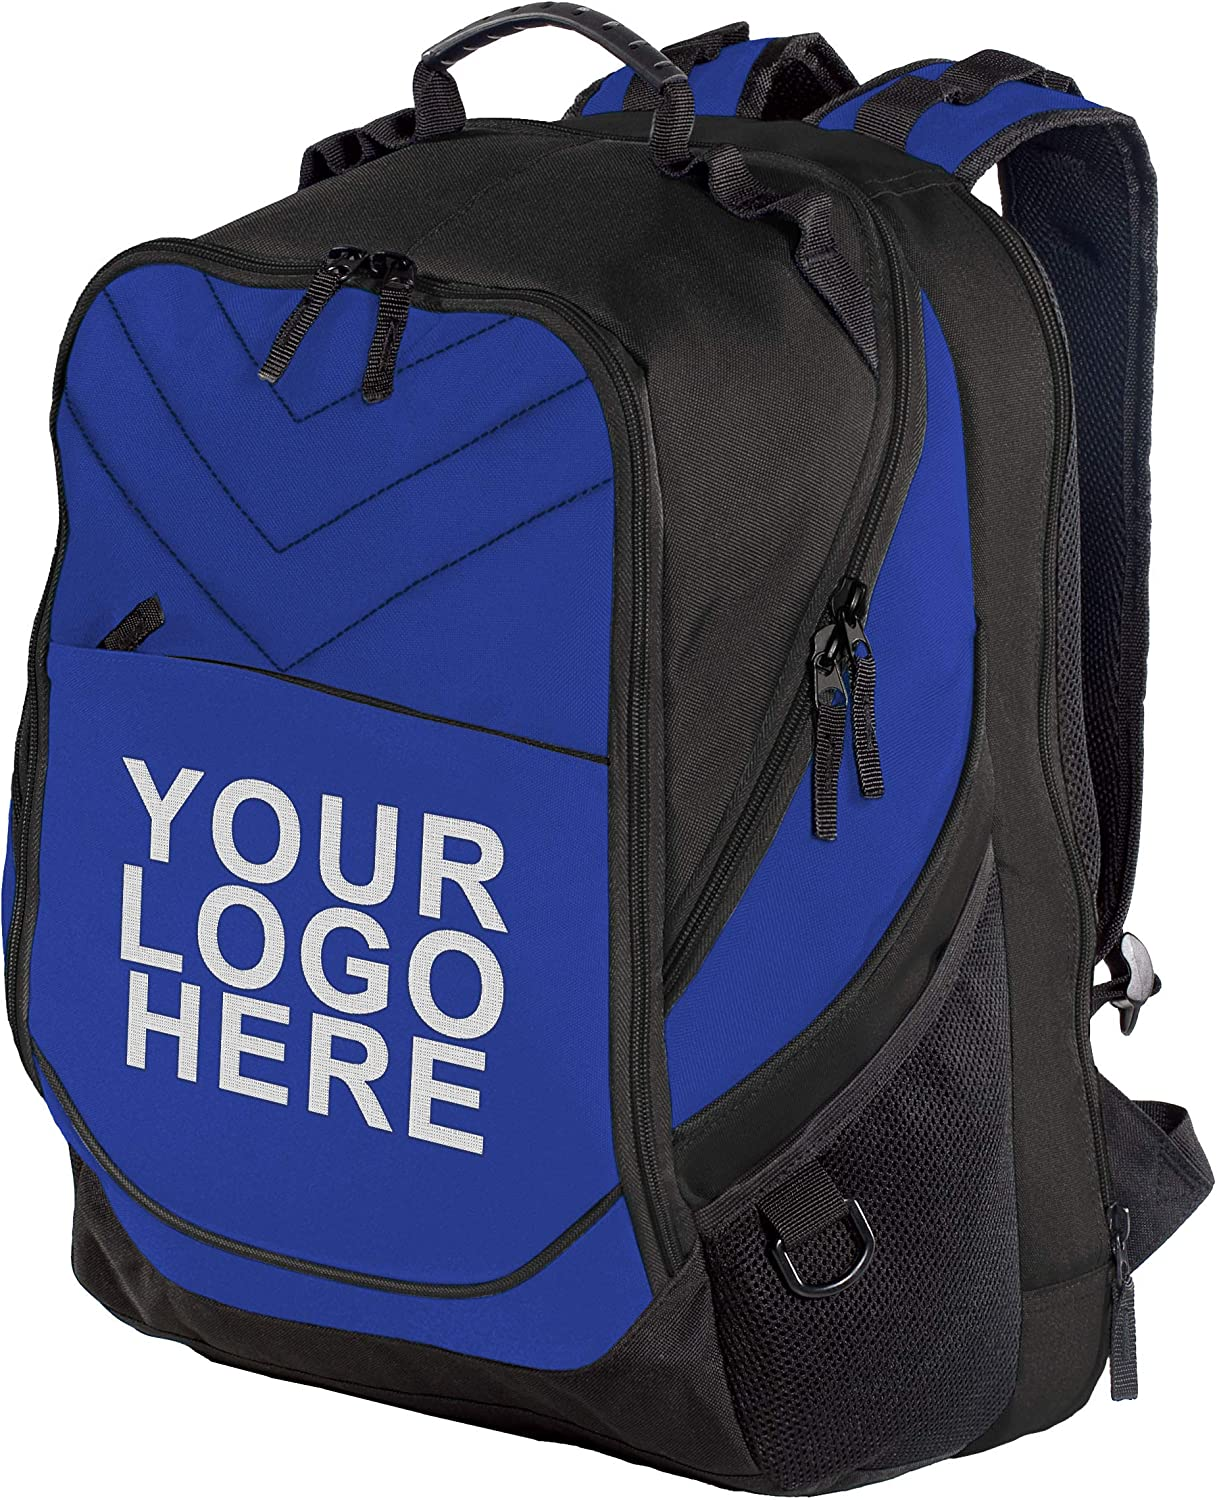 "Personalized Custom Business Computer Backpack - Add Your Logo (17"" Laptops)"